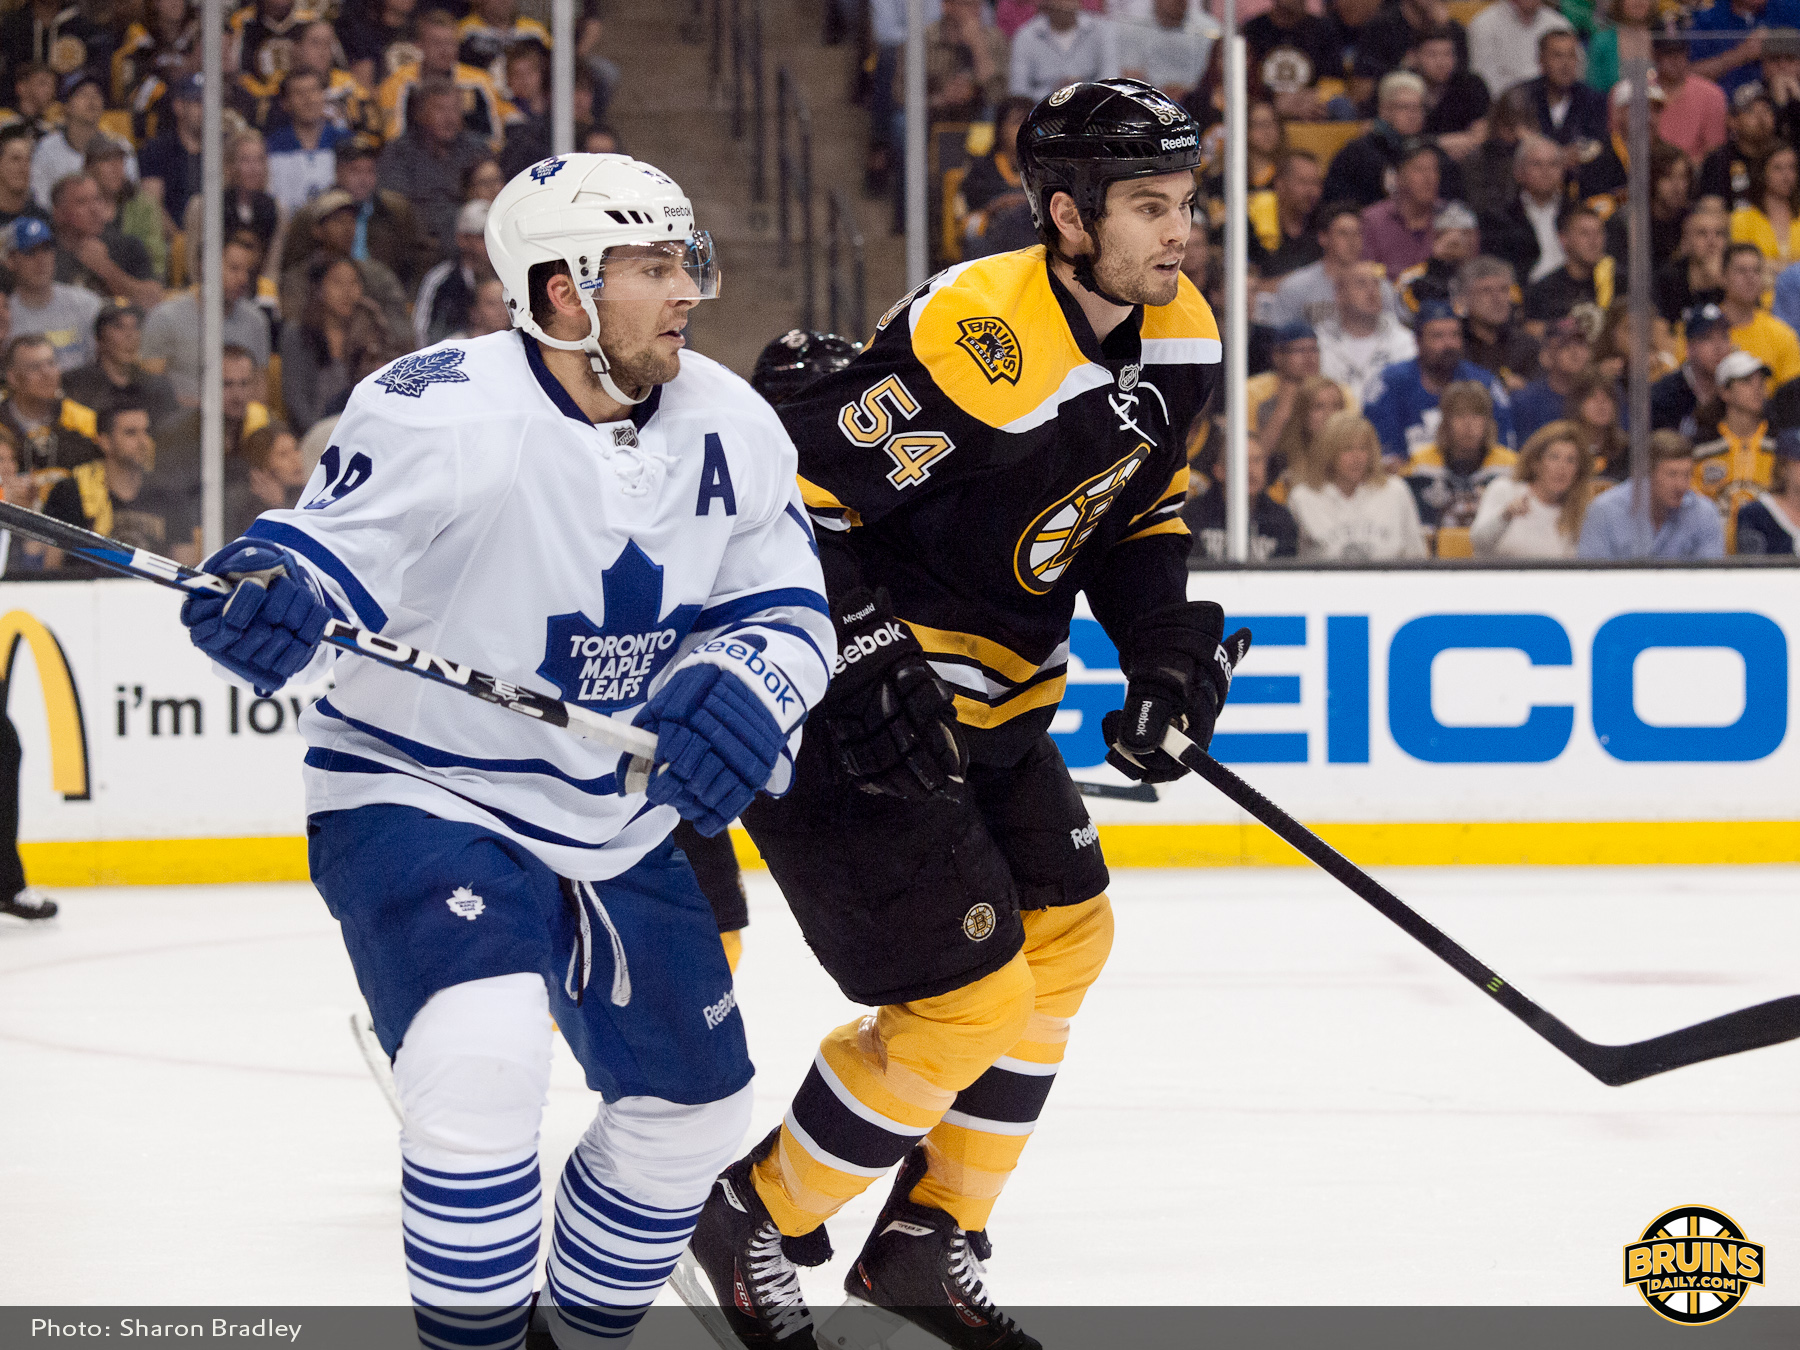 Let's play seven; Leafs beat Bruins in Game 6 - Bruins ...Bruins Hockey